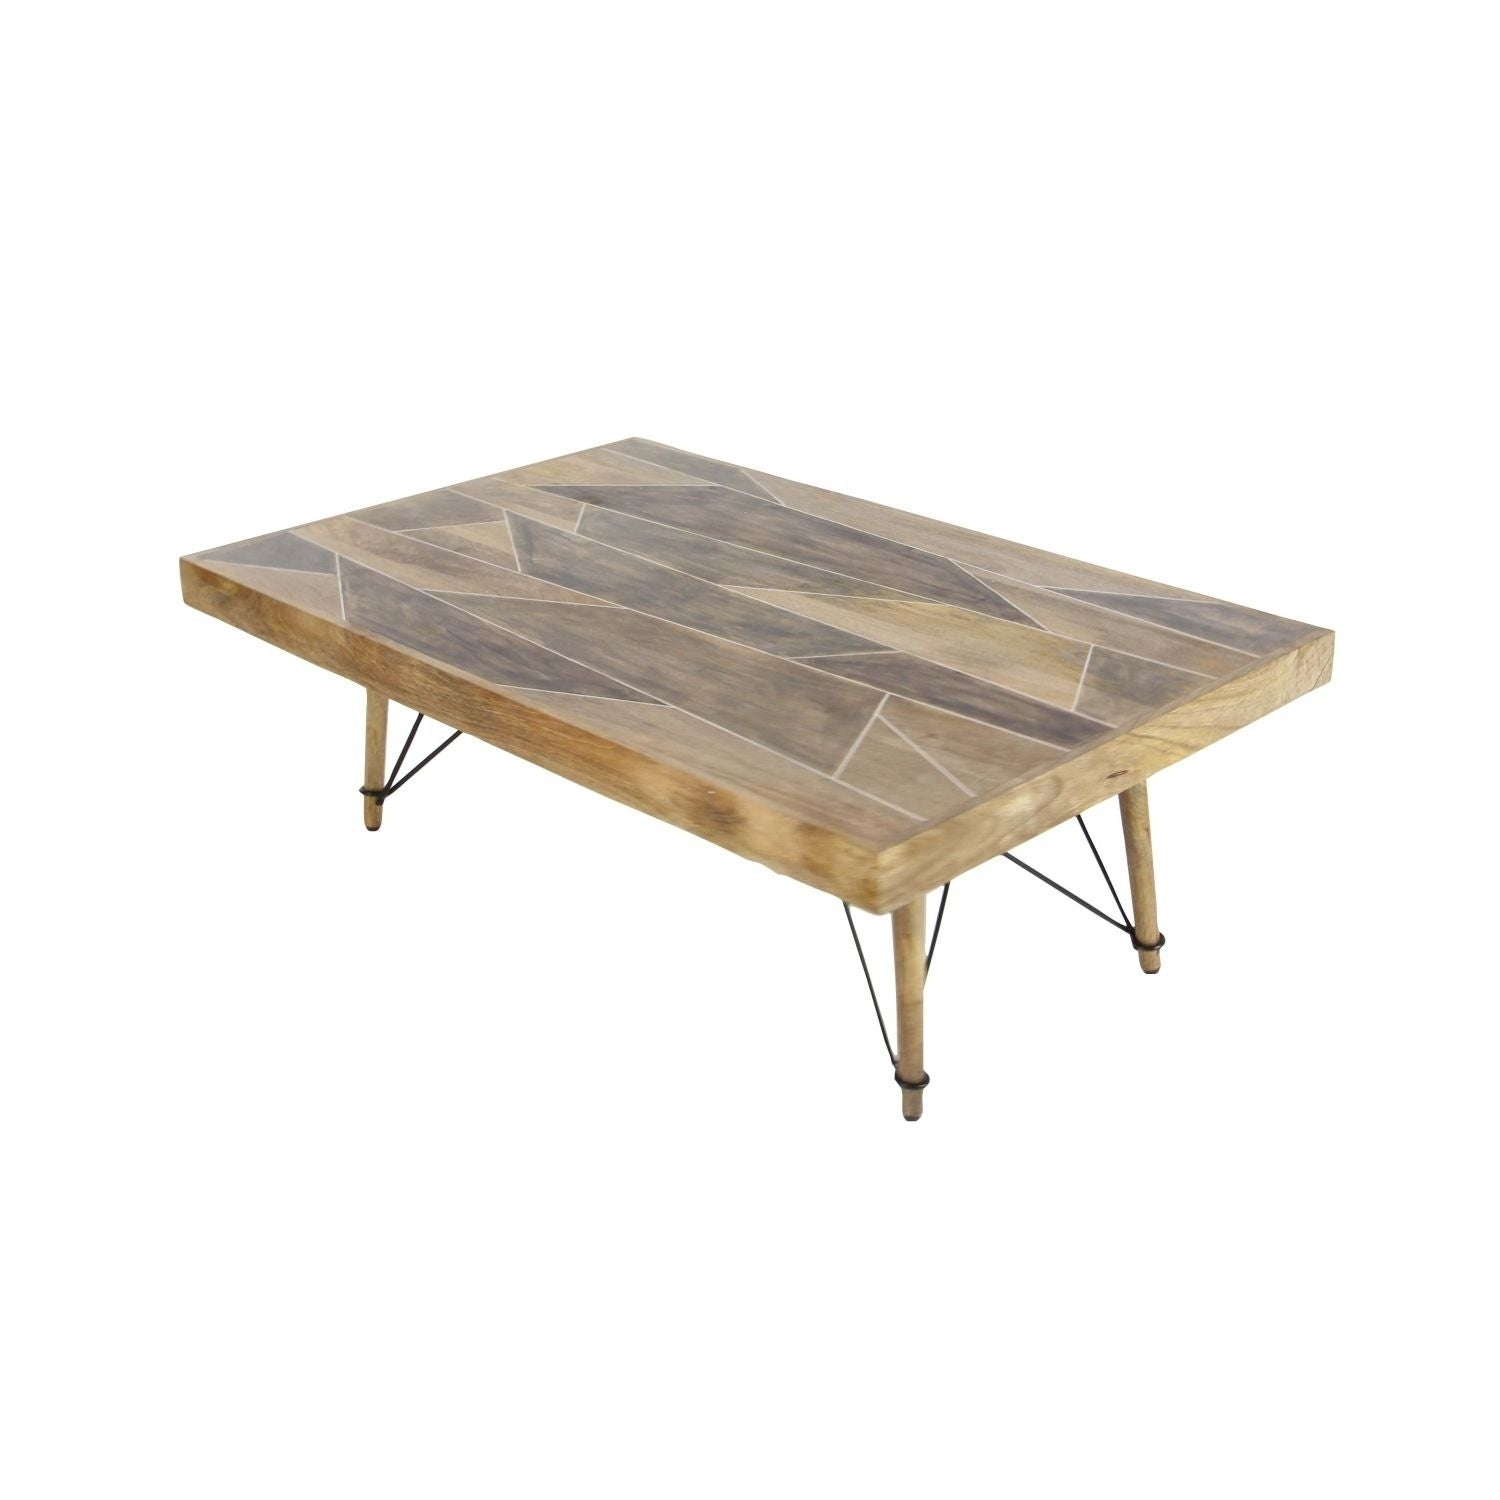 Studio 350 Wood Metal Coffee Table 47 inches wide 16 inches high